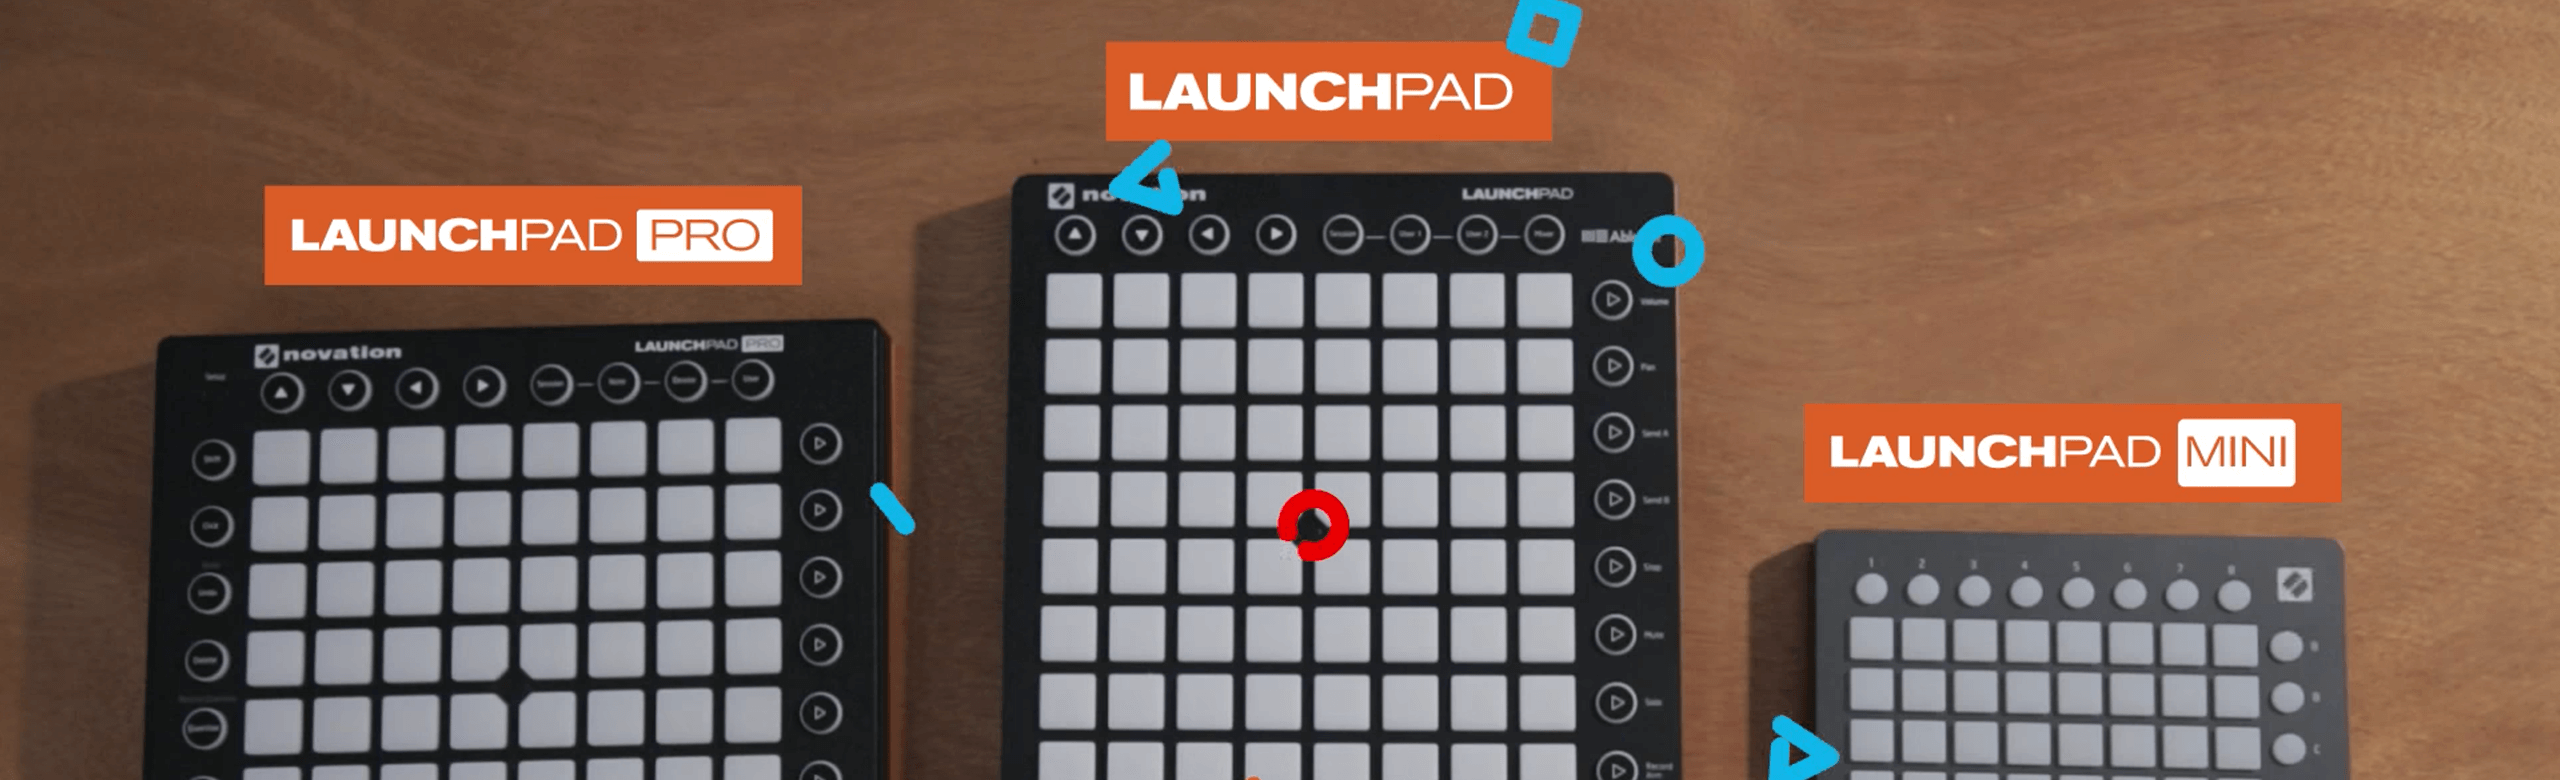 Meet The Launchpads